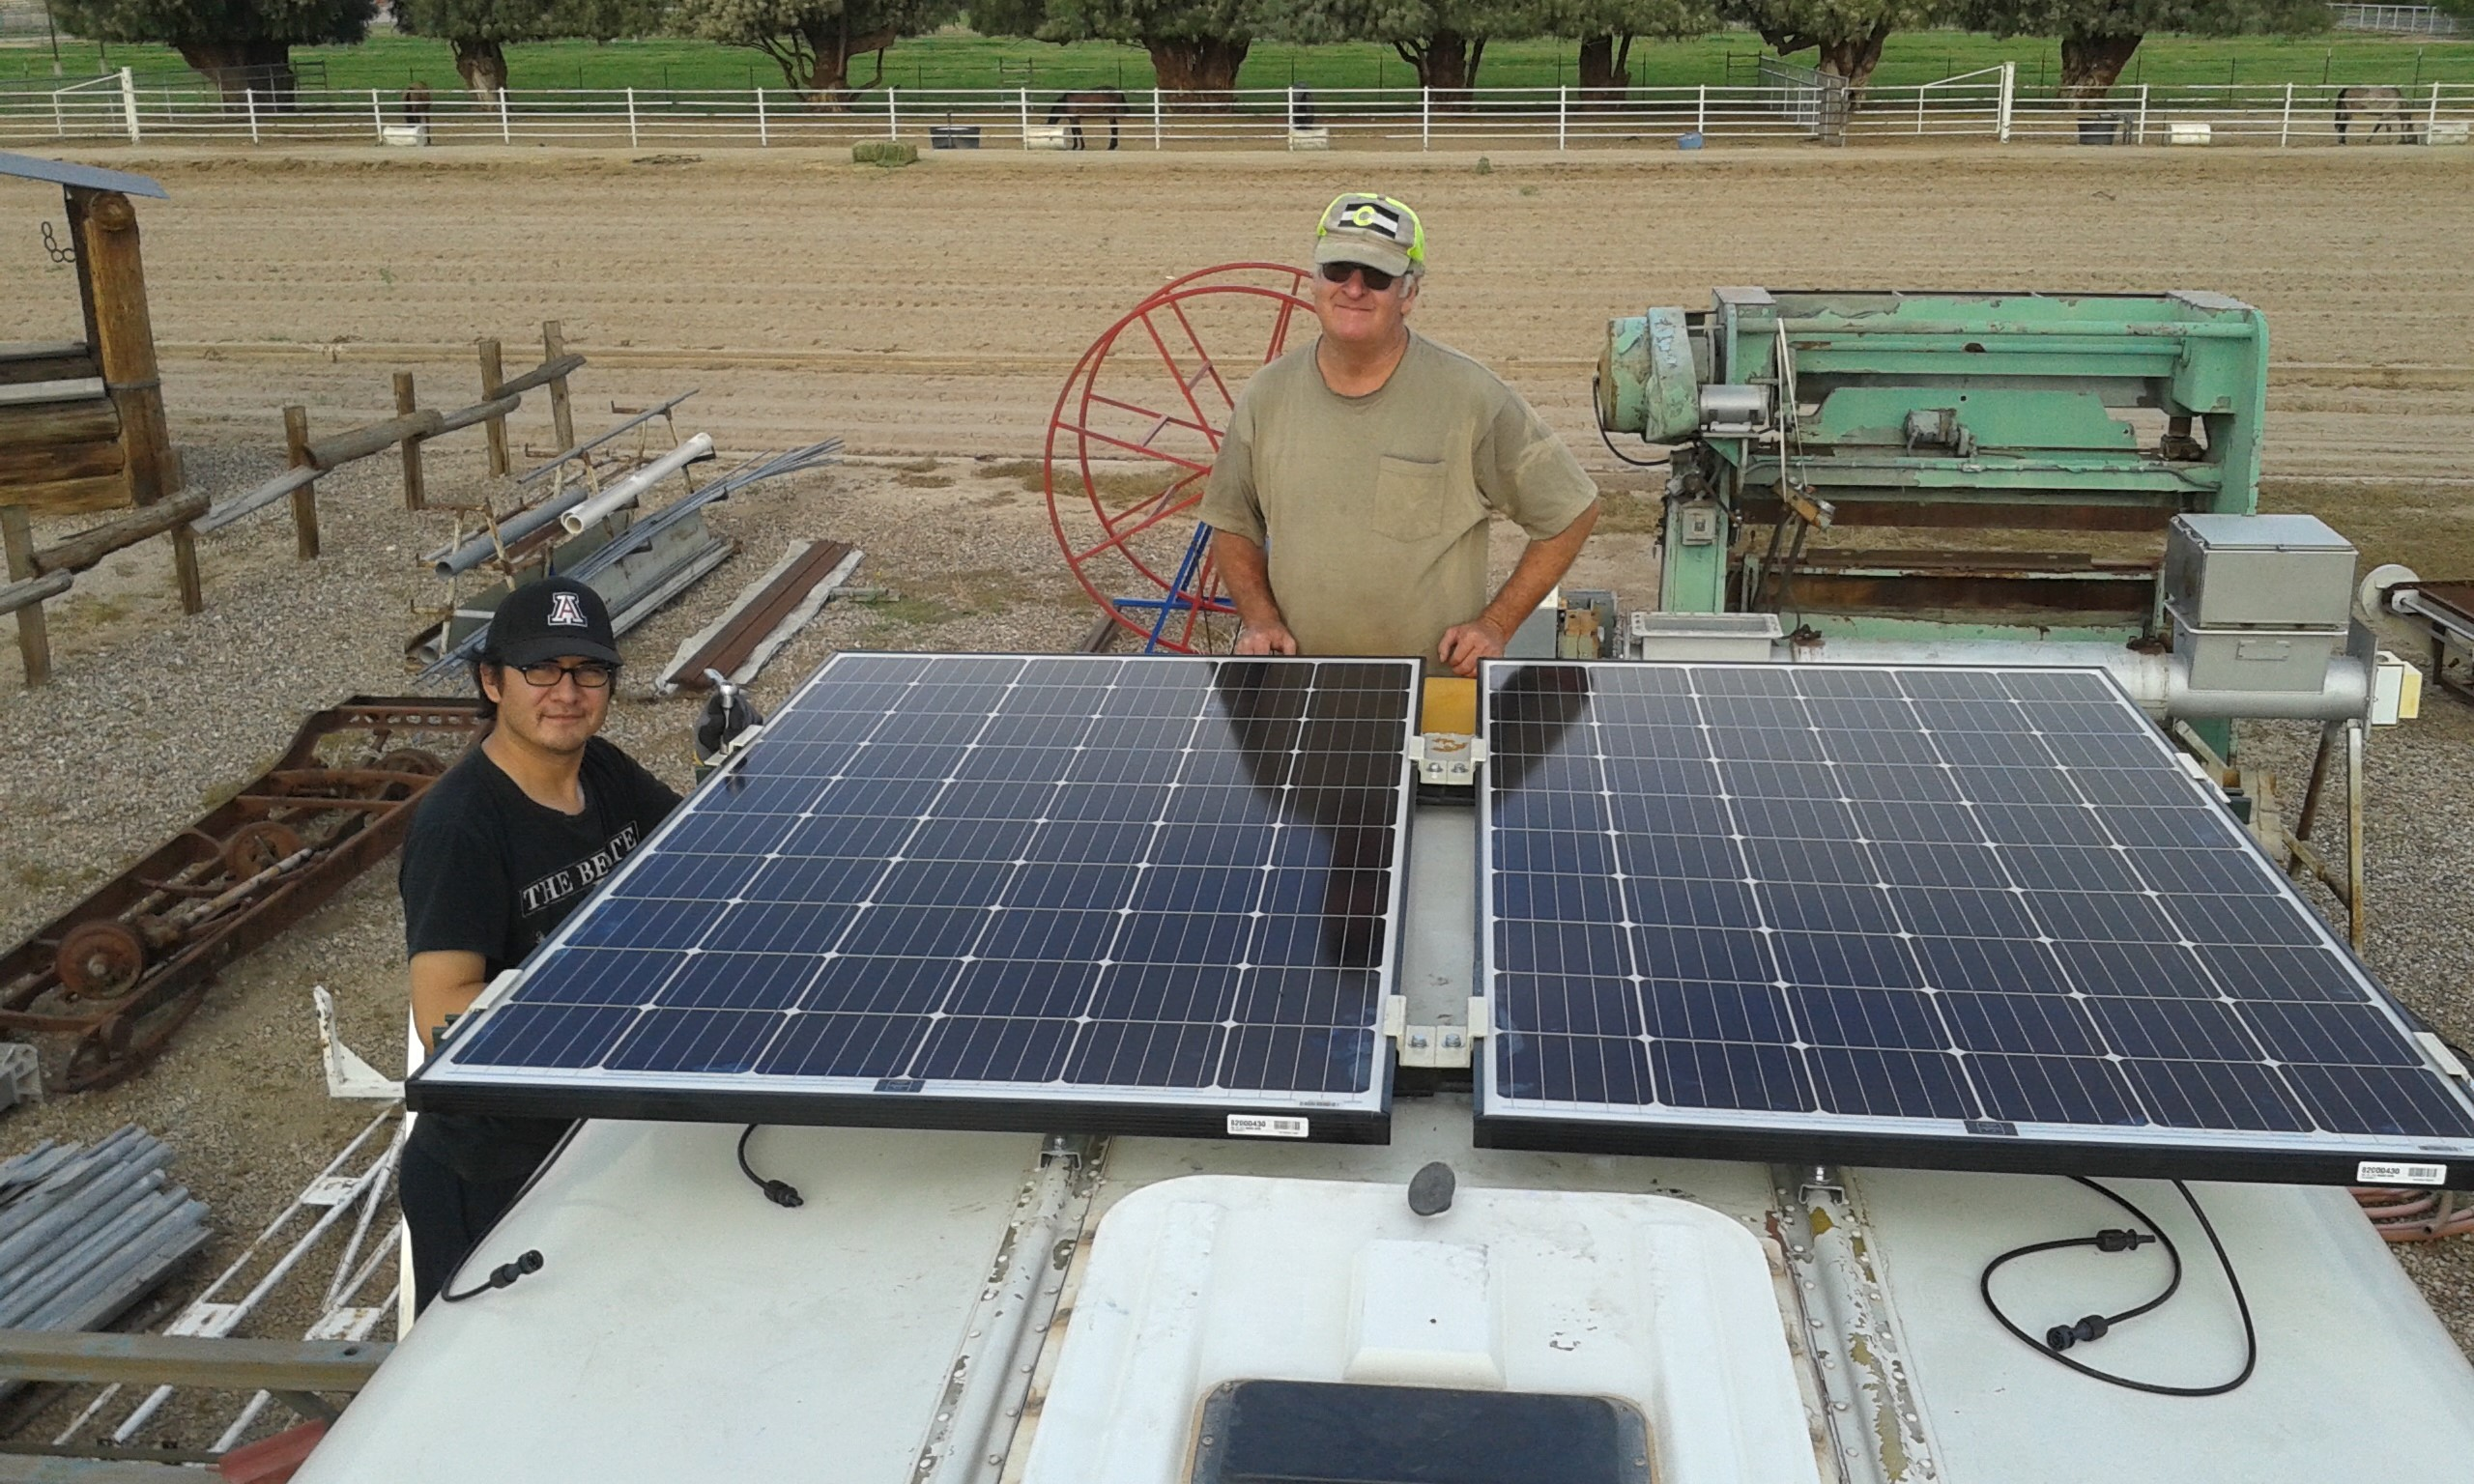 UA research associate Bob Seaman and Chris Yazzie, a master's degree student in environmental engineering, fasten solar panels to the roof of the bus that will purify water in Navajo Nation. (Photo: Rodolfo Peon)